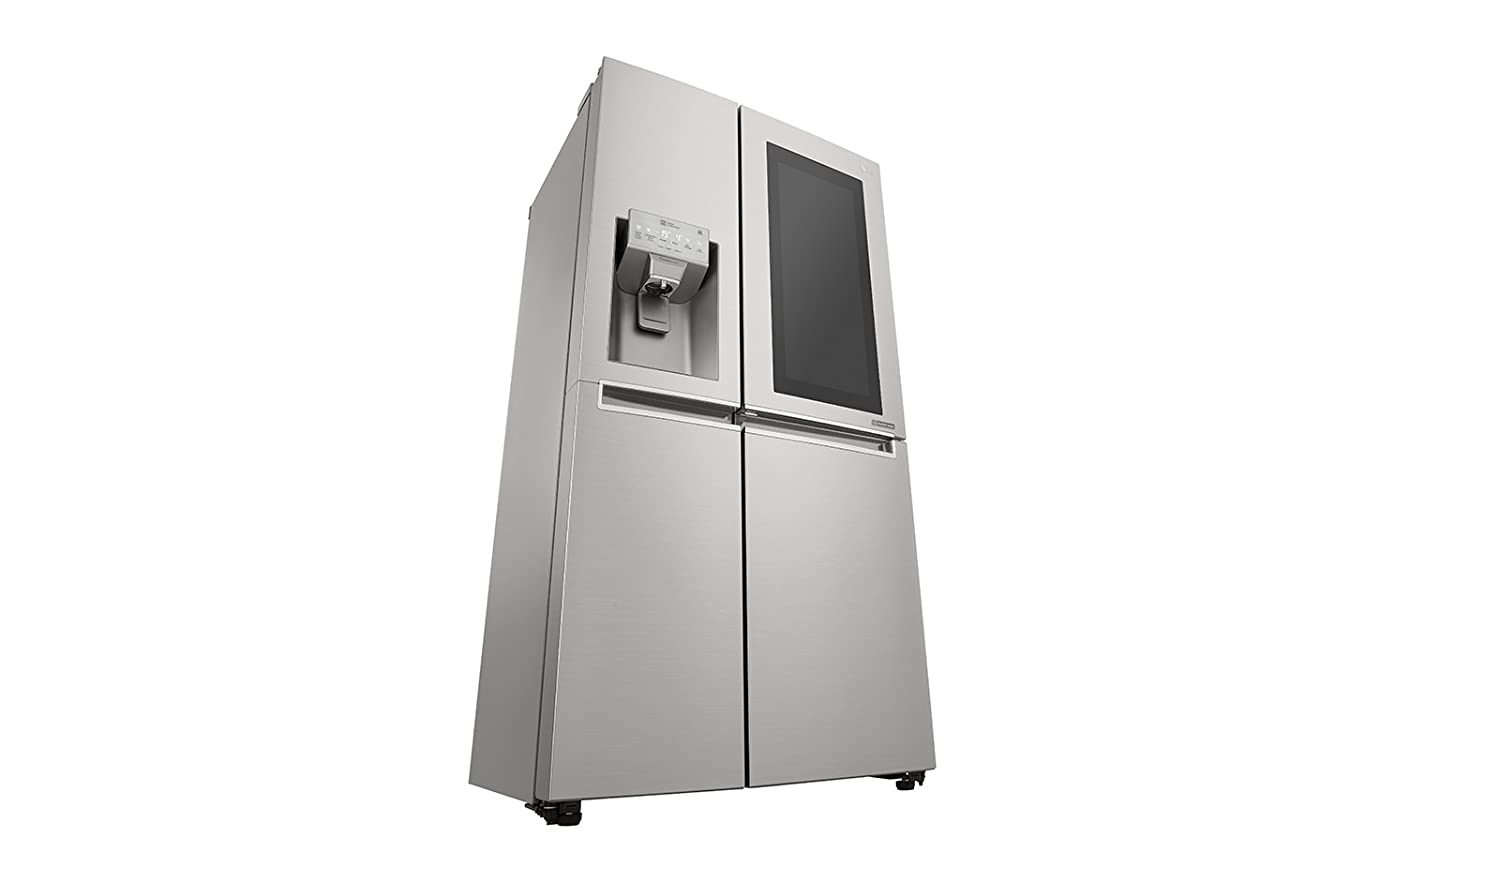 Side By Side Kühlschrank Test 2018 : Lg electronics instaview gsx neaz side by side a cm